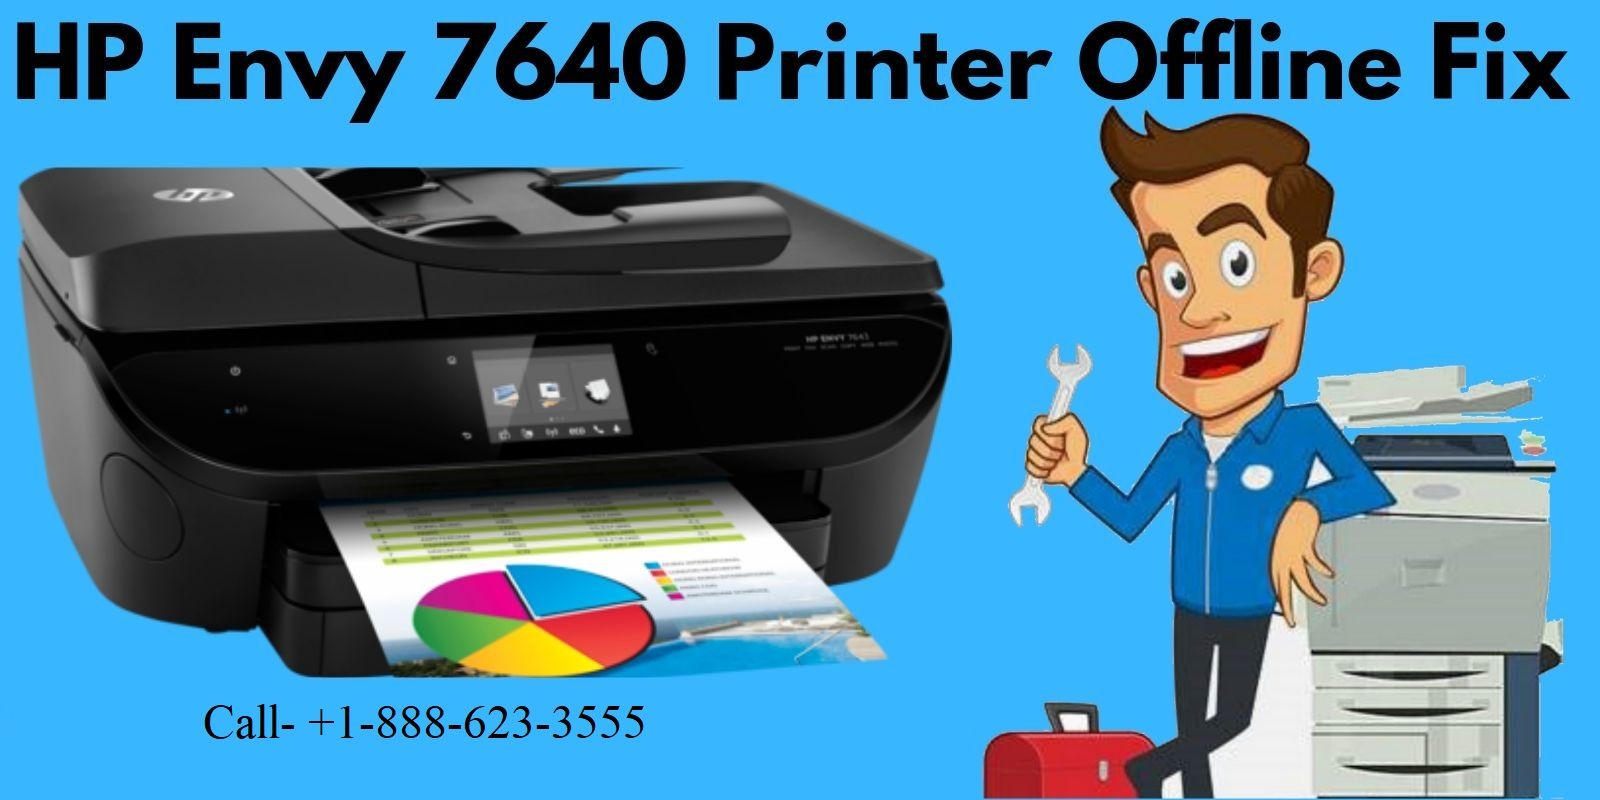 Easy way to troubleshoot your HP Envy 7640 Printer Offline